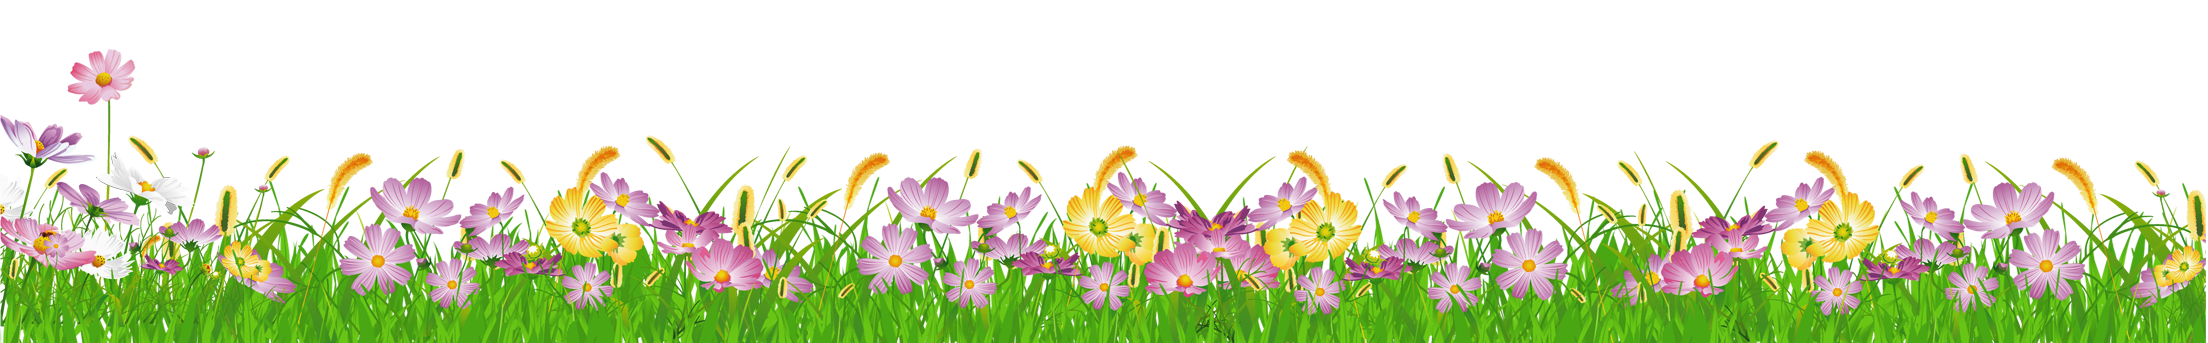 Grass ground with pink flowers png clipart spring pinterest discover ideas about pink flowers mightylinksfo Image collections